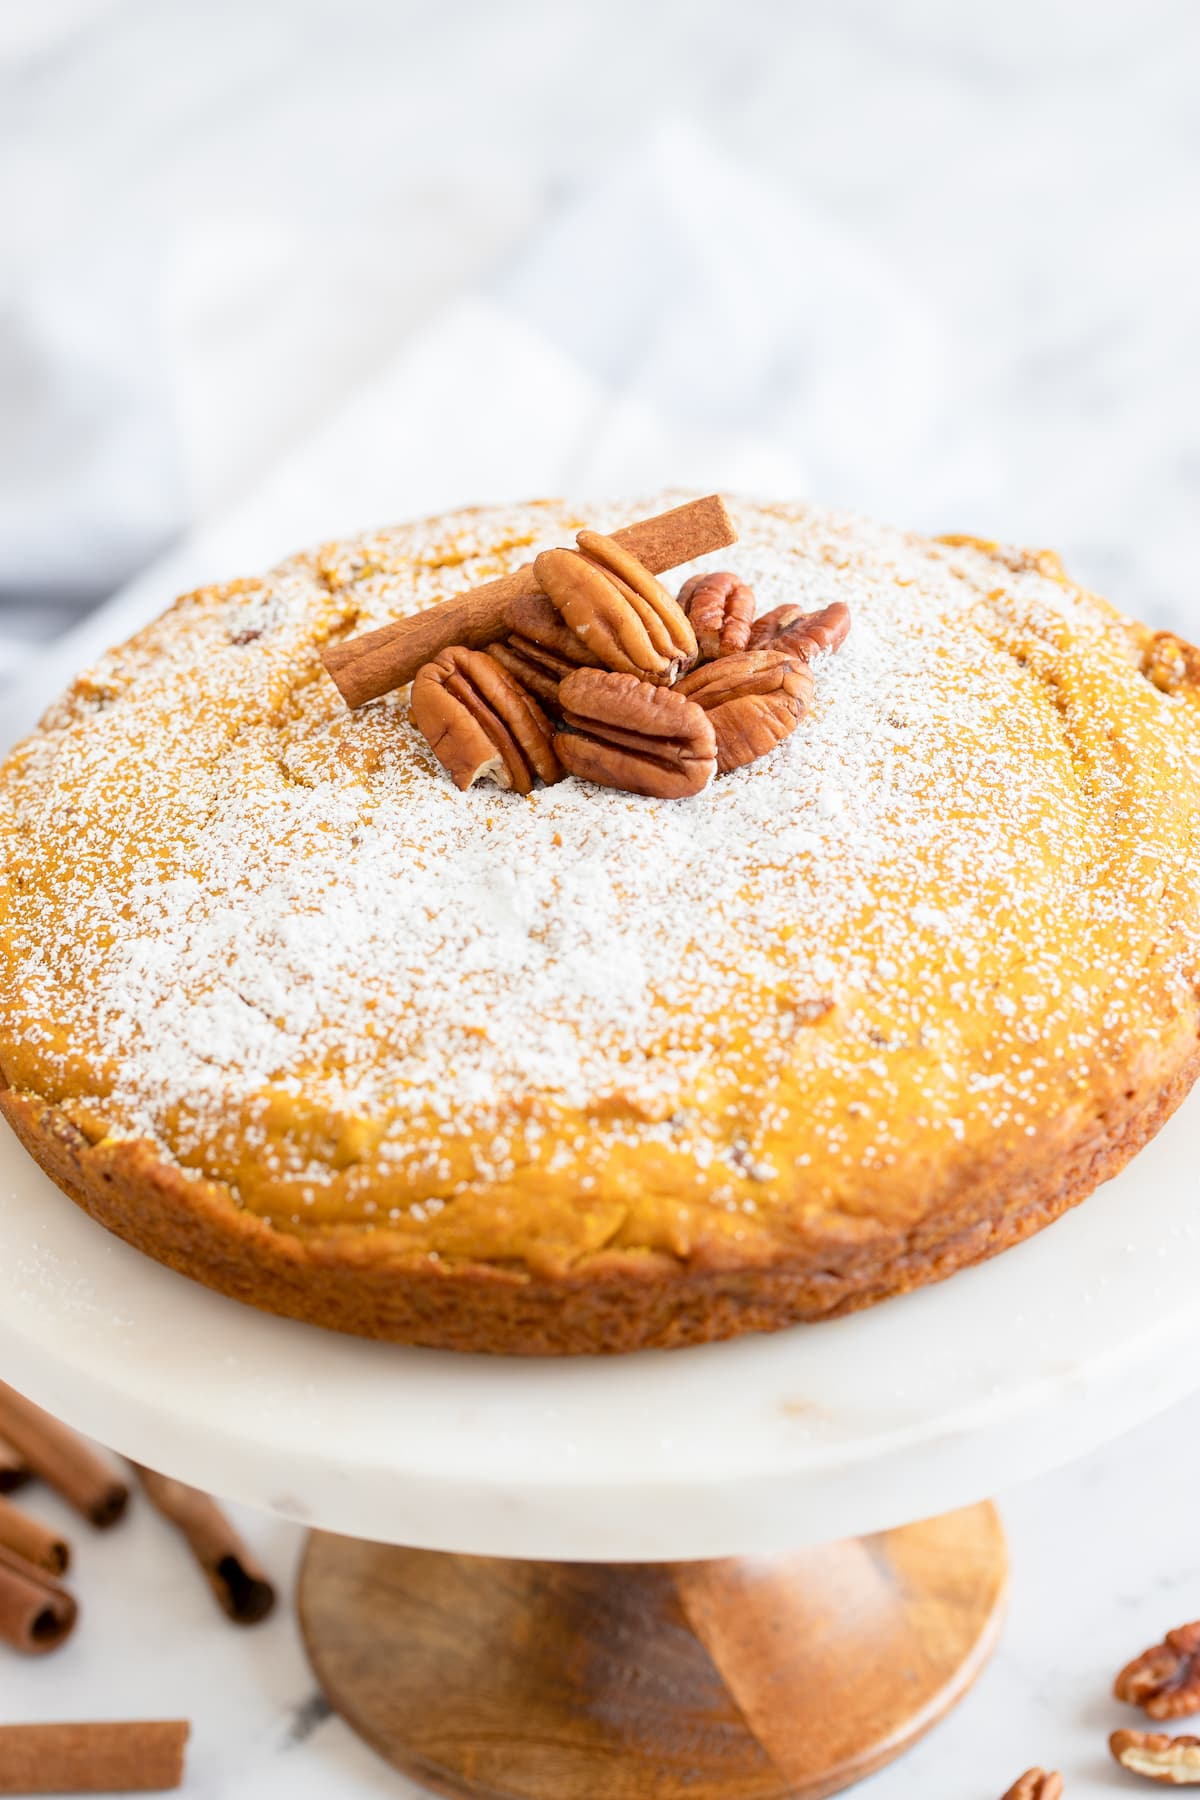 Pumpkin Crunch Snacking Cake dusted with powdered sugar and a pile of pecans in the center on a cake stand.